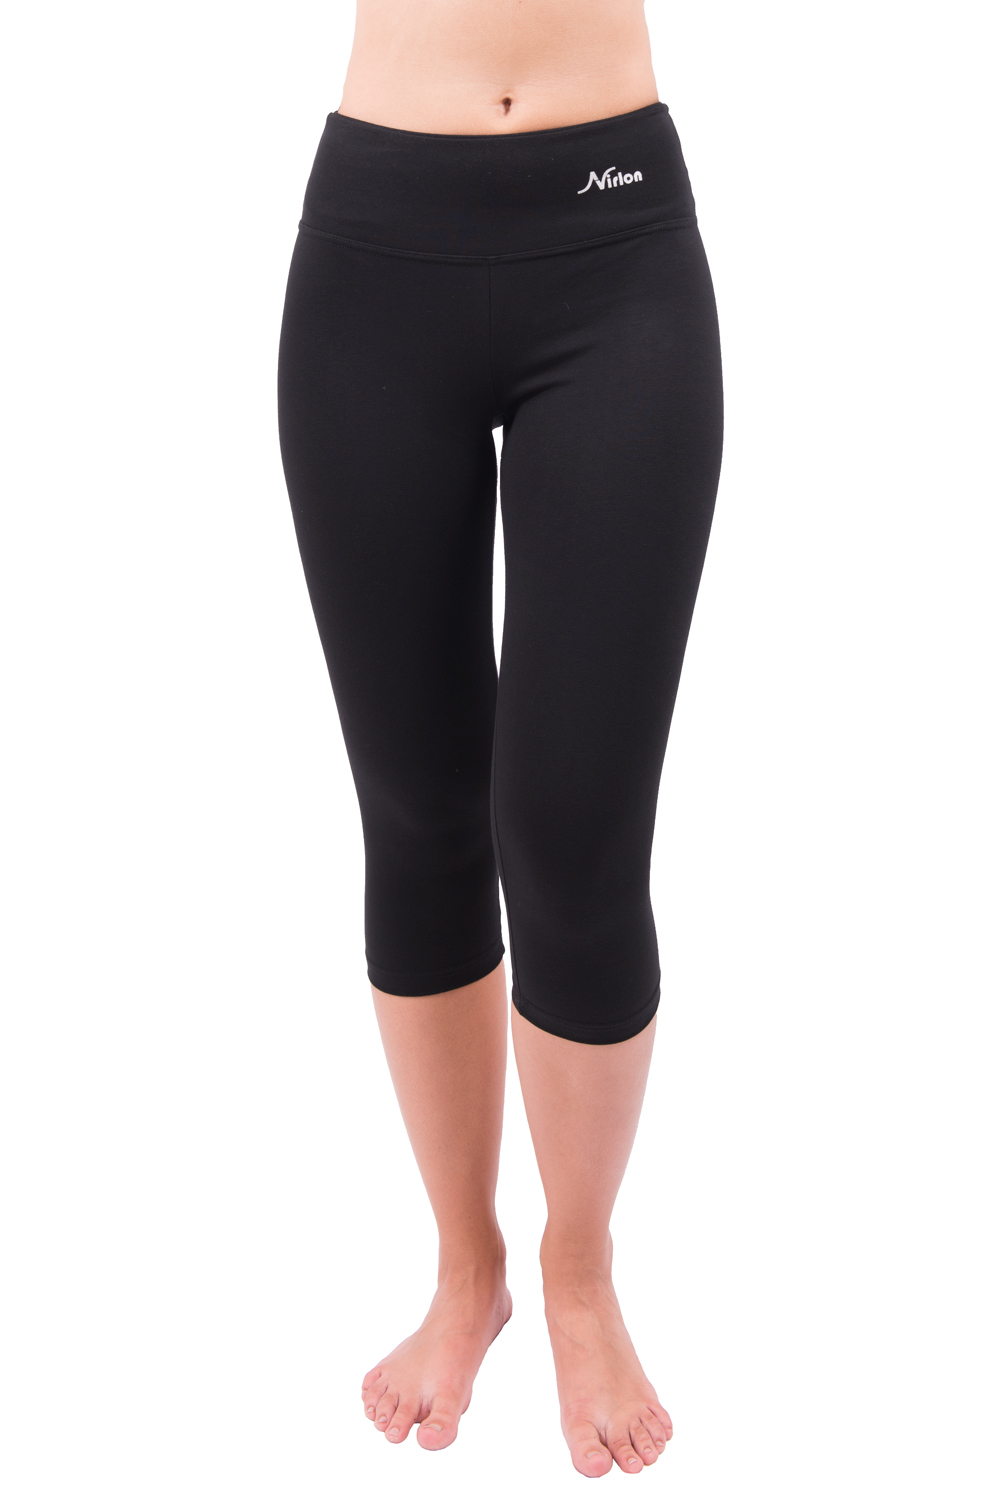 b23974994fd9 Capri 3 4 Yoga Pants For Women - Nirlon-yoga pants   leggings